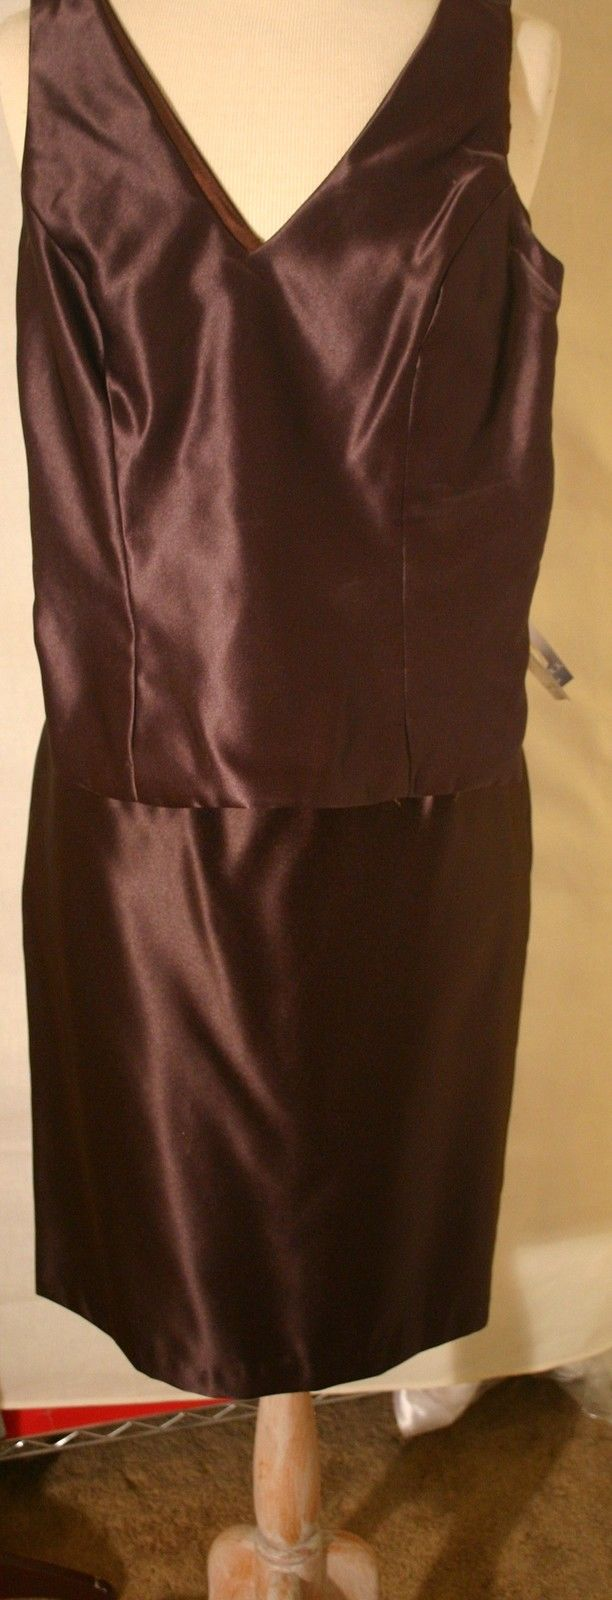 JESSICA McCLINTOCK BrownTop and Skirt NWT! Size 6